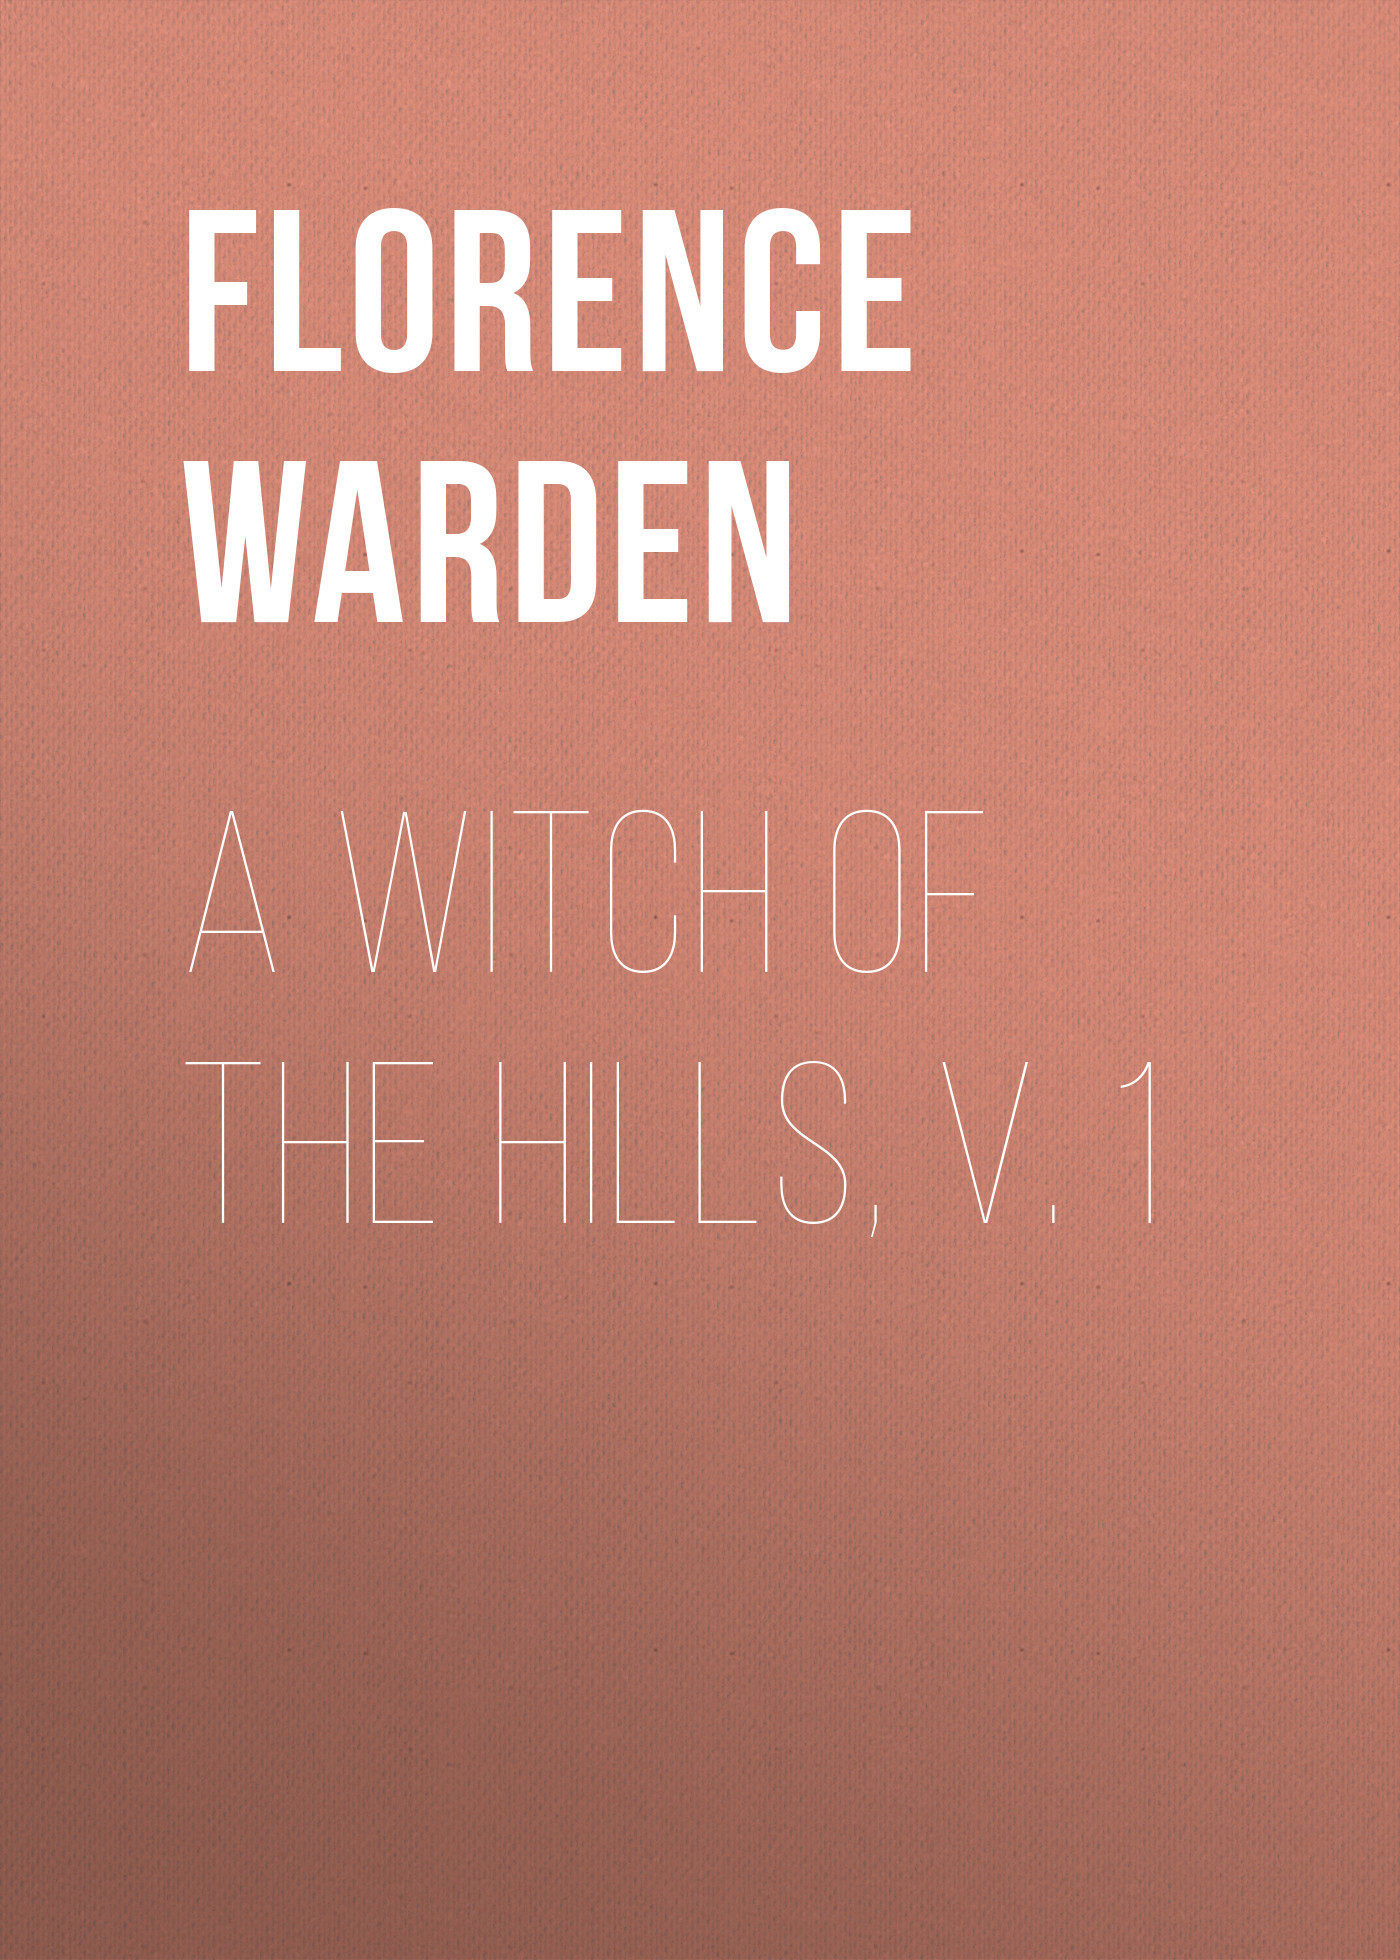 Florence Warden A Witch of the Hills, v. 1